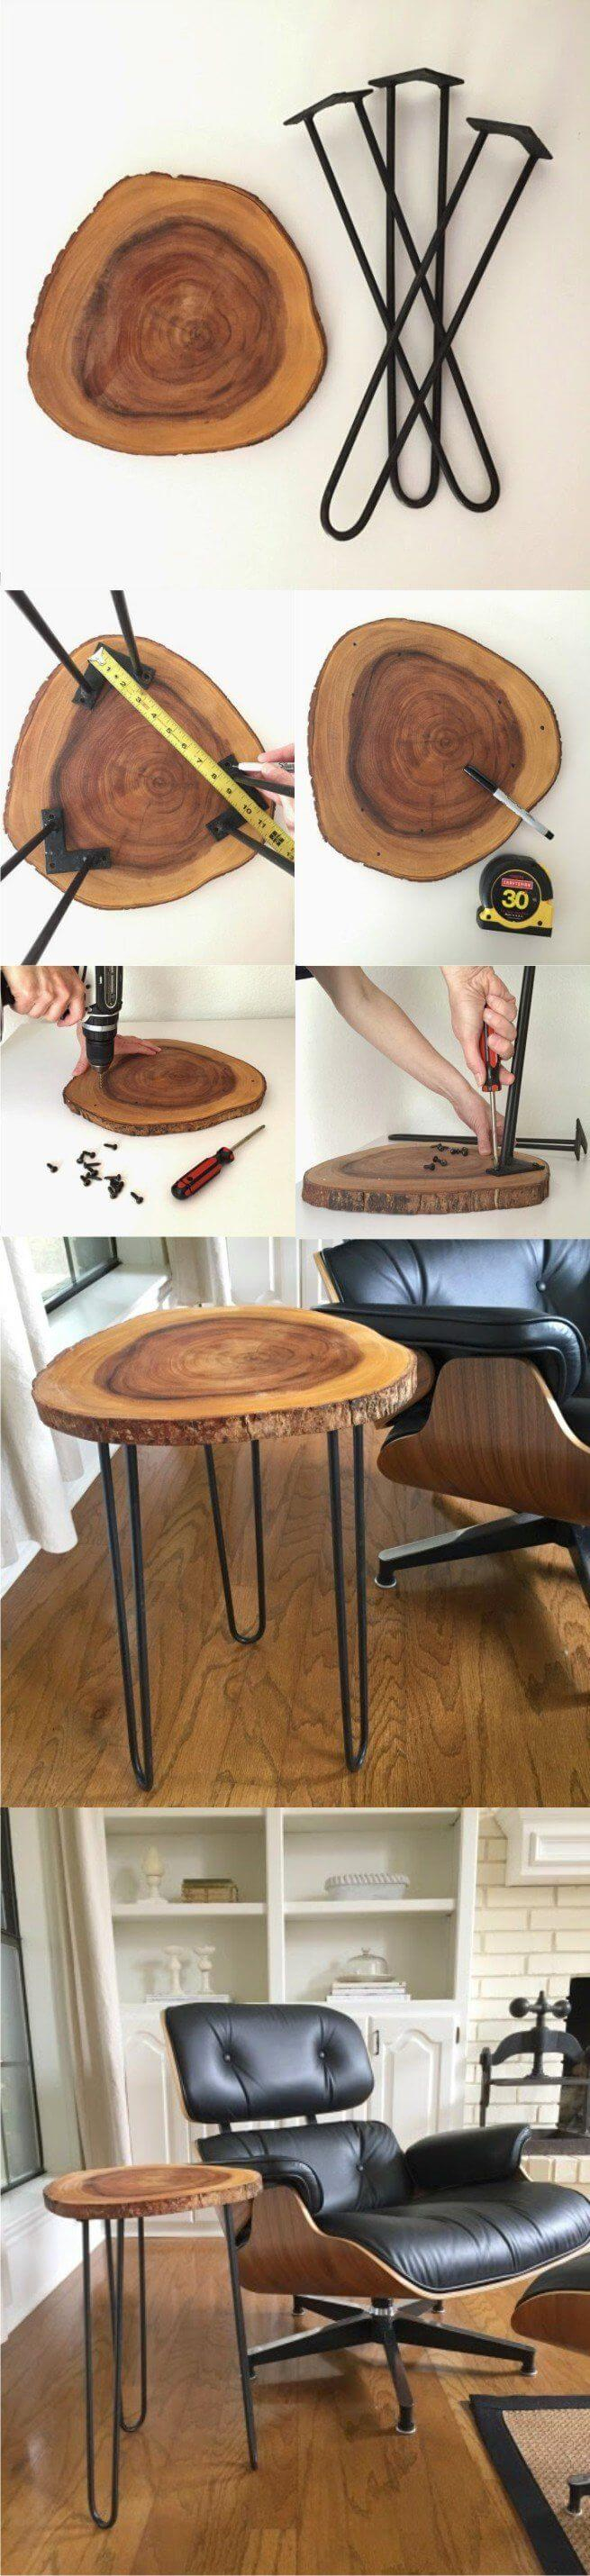 woodwork craft ideas 32 best diy wood craft projects ideas and designs for 2018 3259